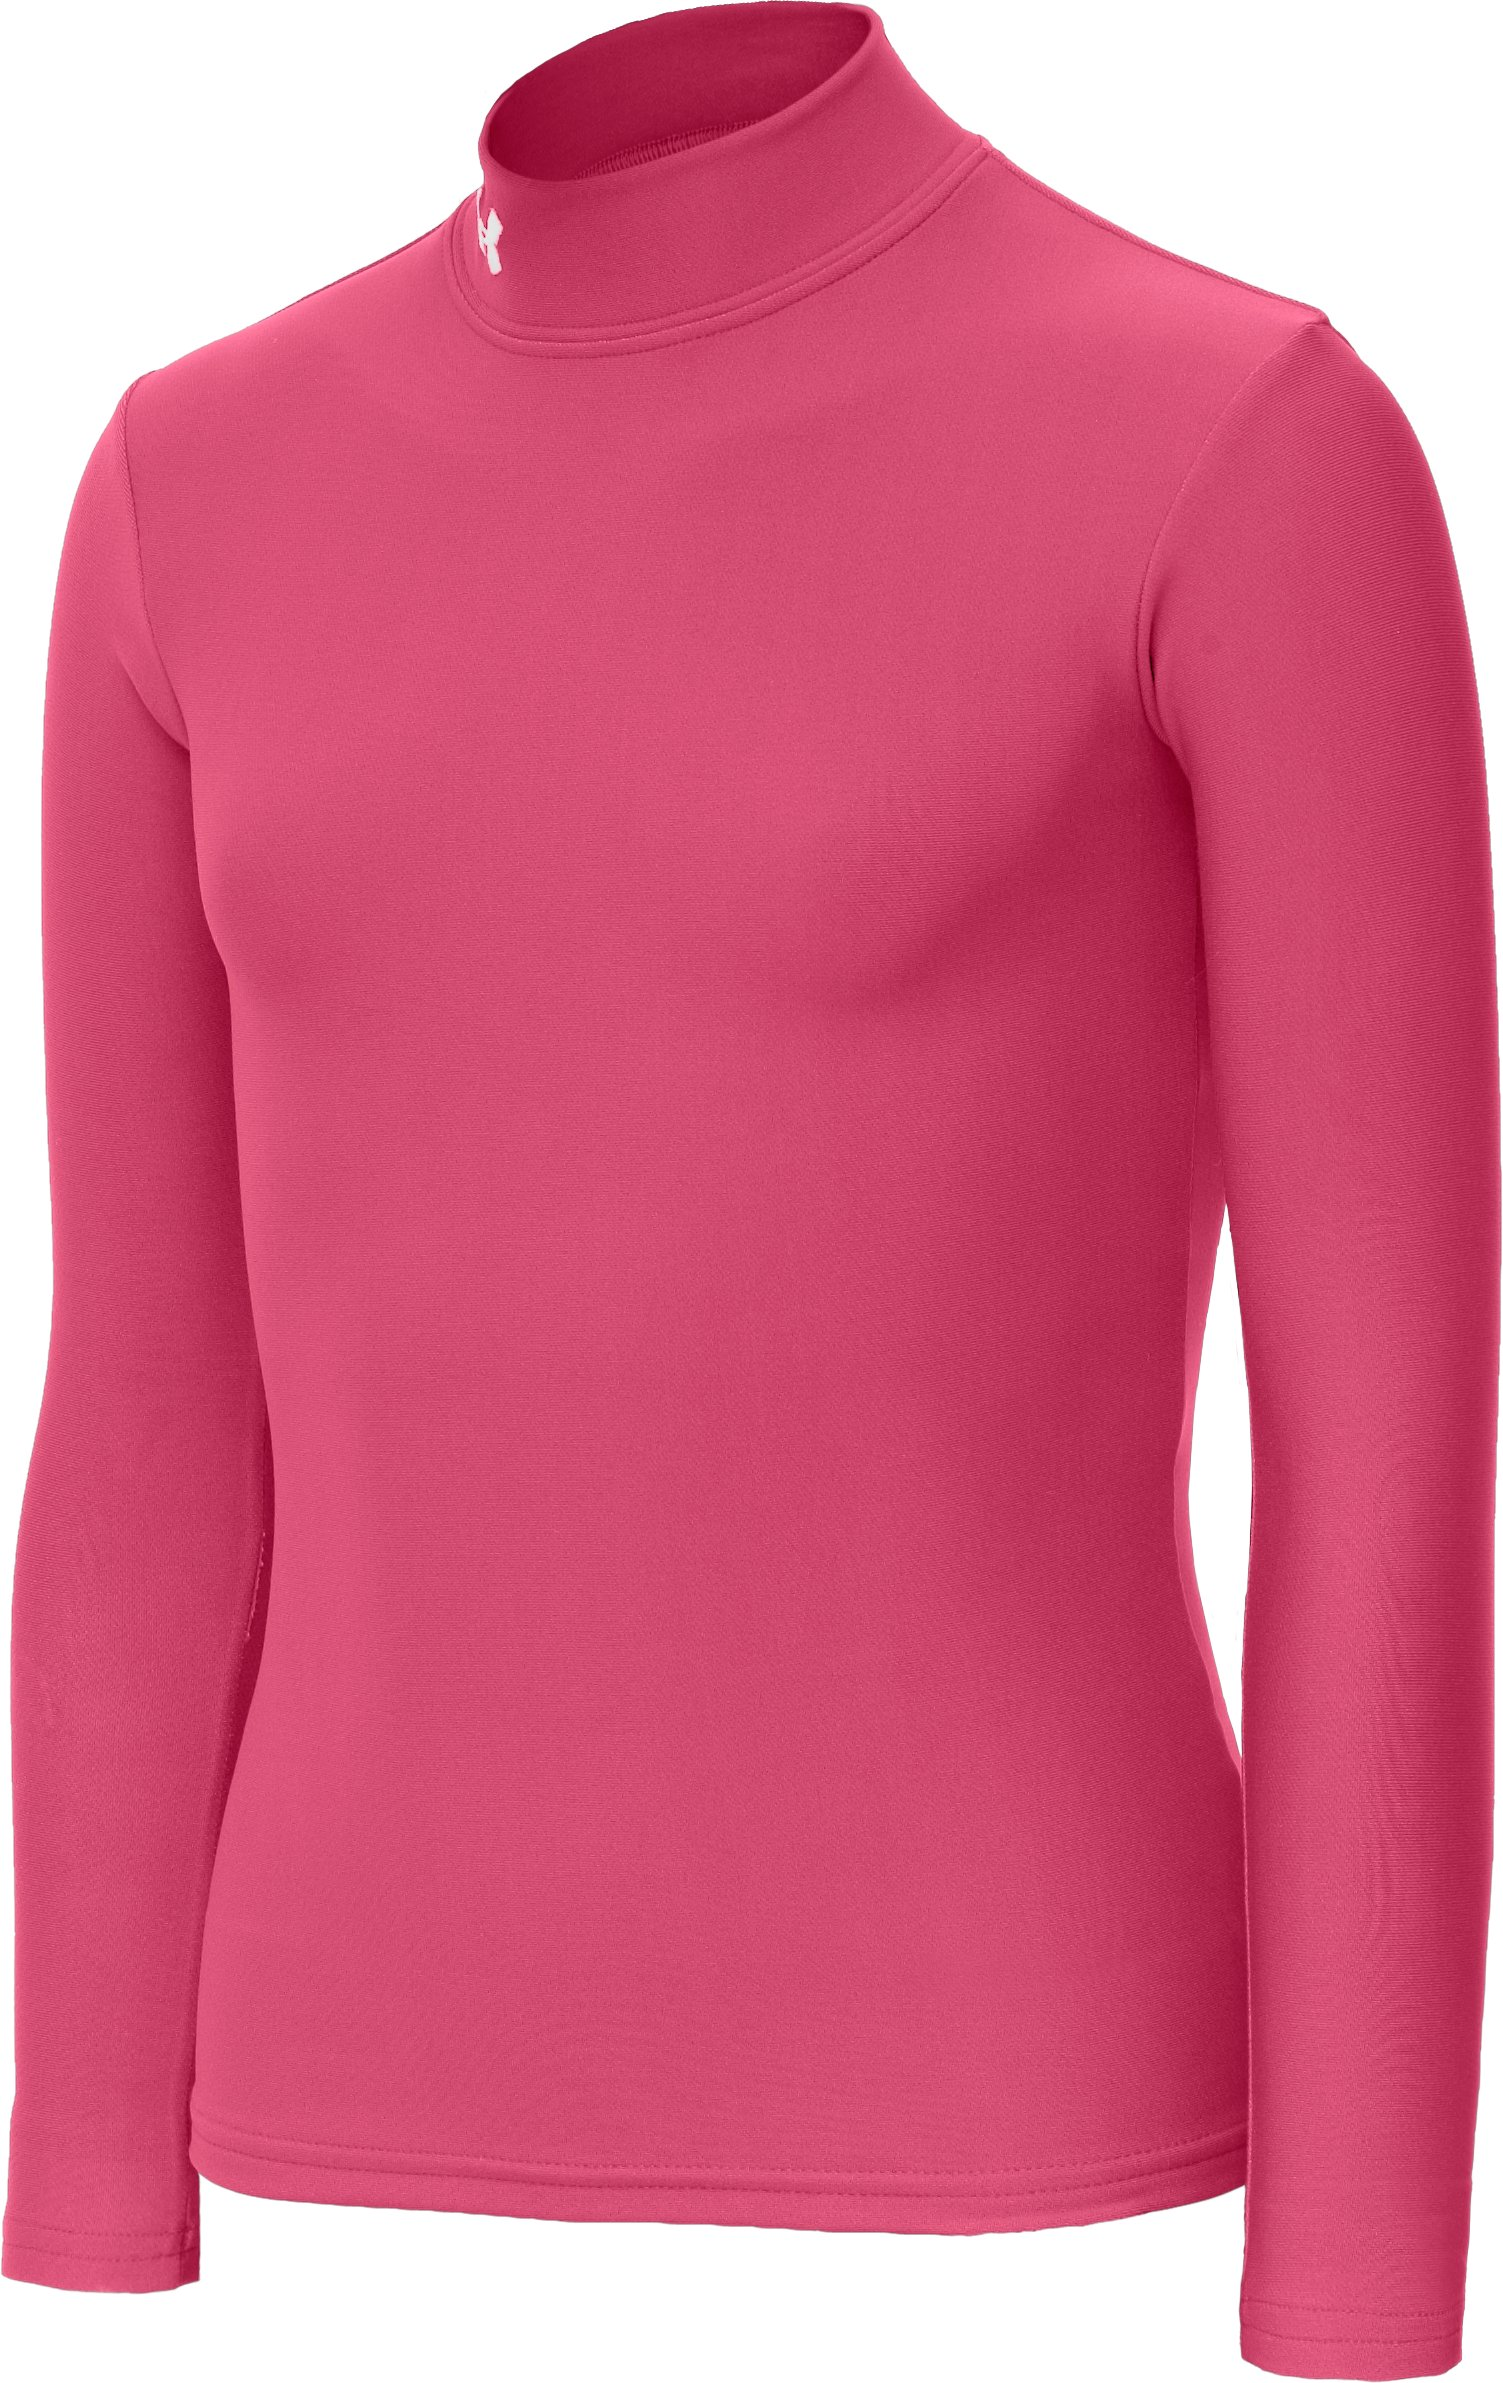 Girls' ColdGear® Fitted Long Sleeve Mock, Ultra, zoomed image